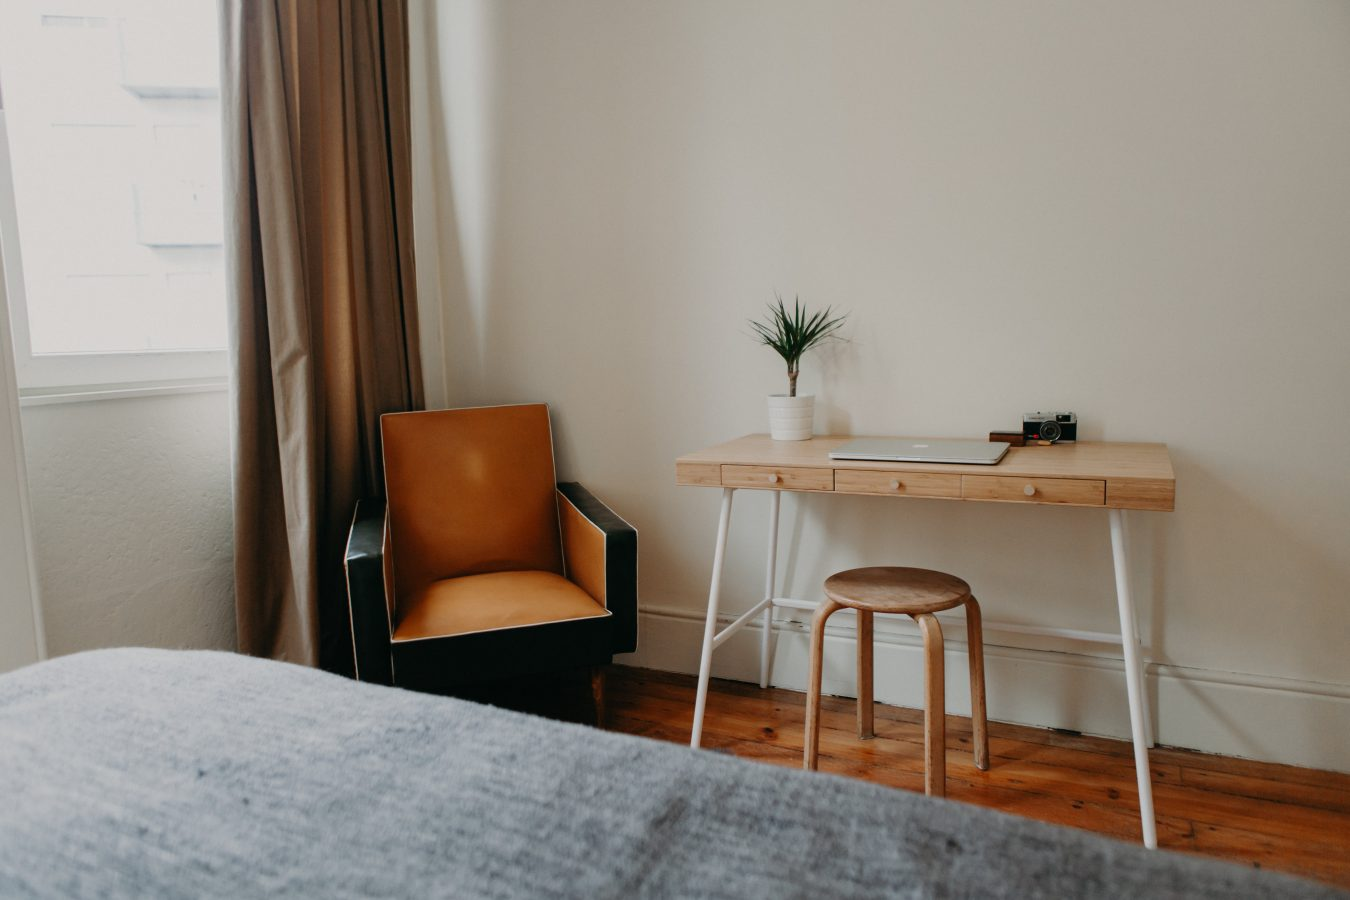 AIRBNB – HANNAH TOLDT PHOTOGRAPHY